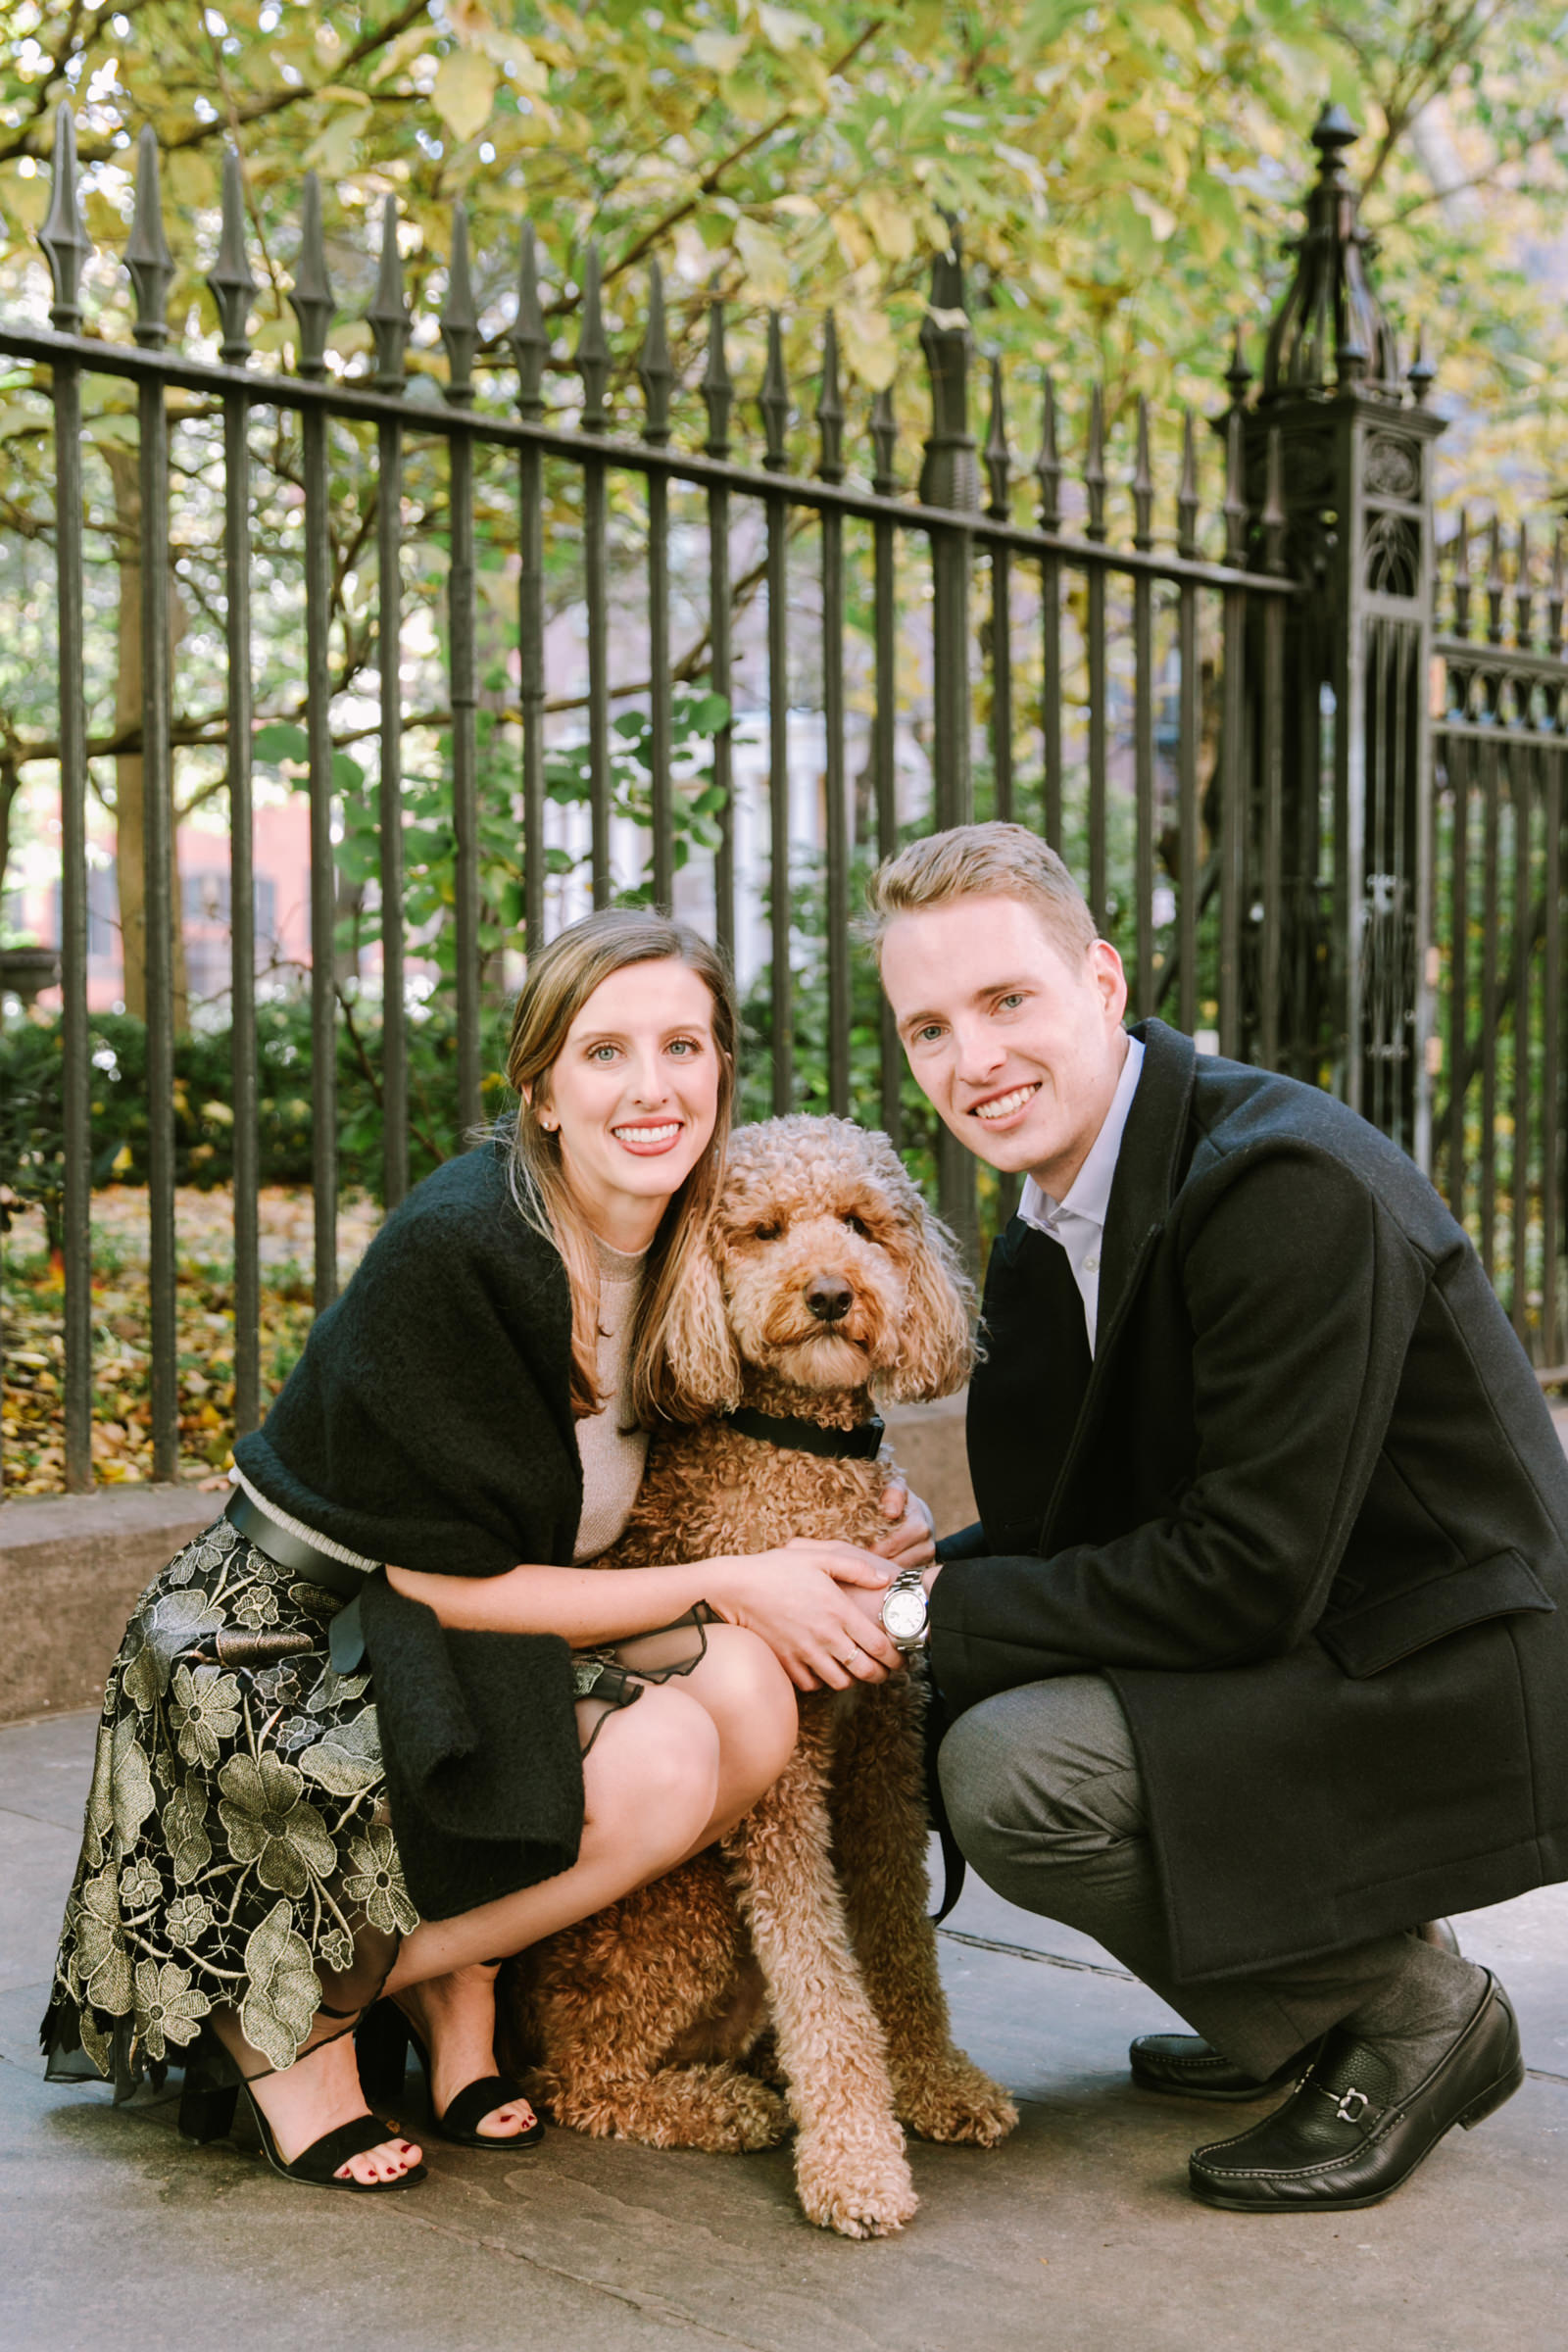 Central-park-fall-engagement-session-by Tanya Isaeva-99.jpg